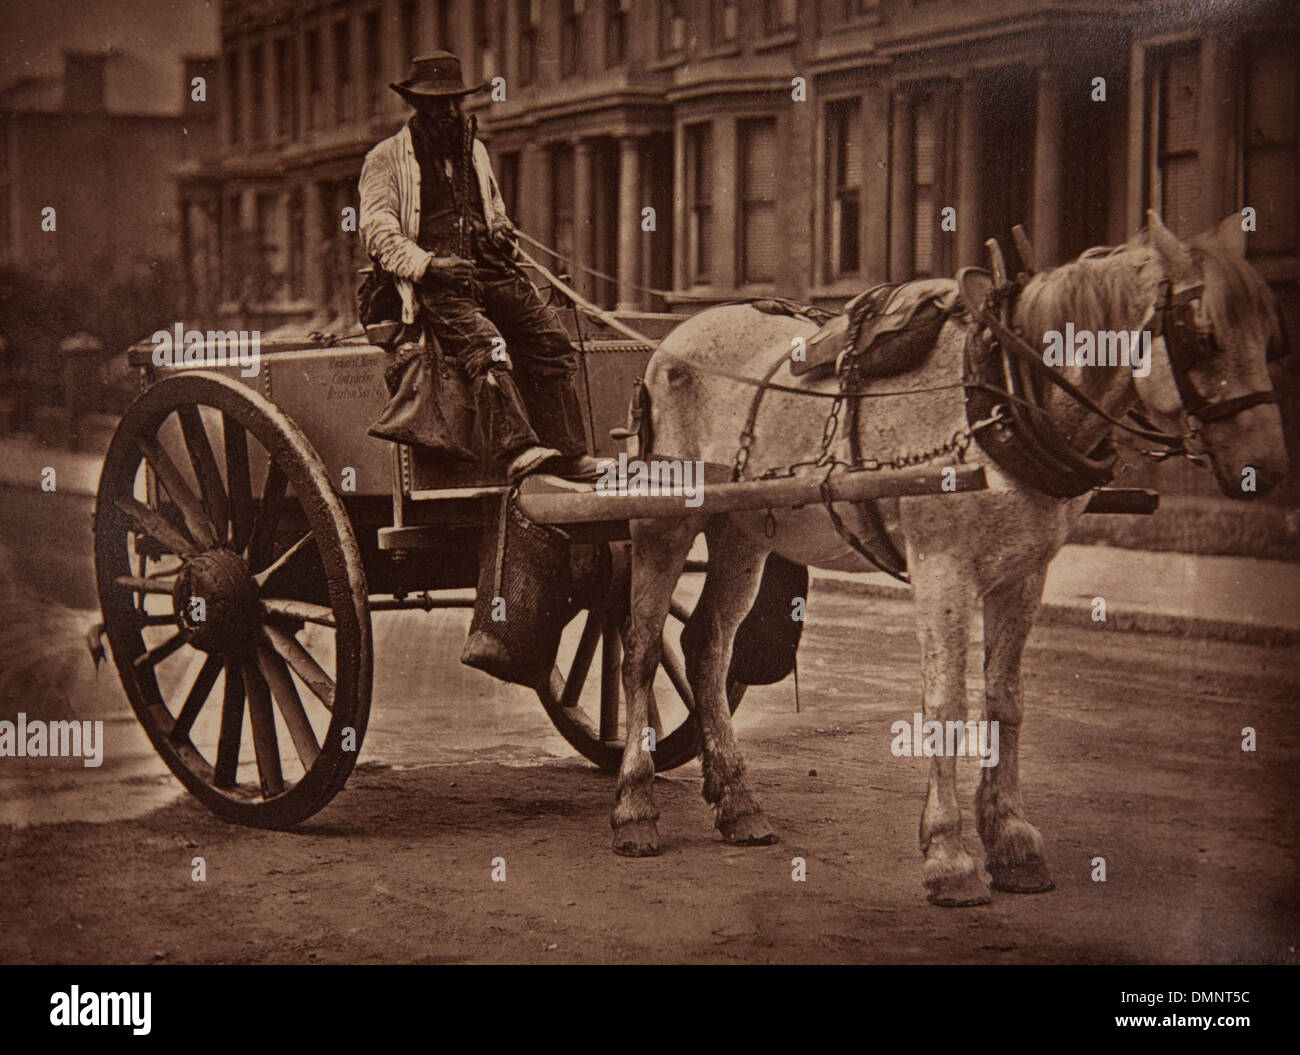 Photograph showing 'The Water-Cart' in the Street Life in London book - Stock Image